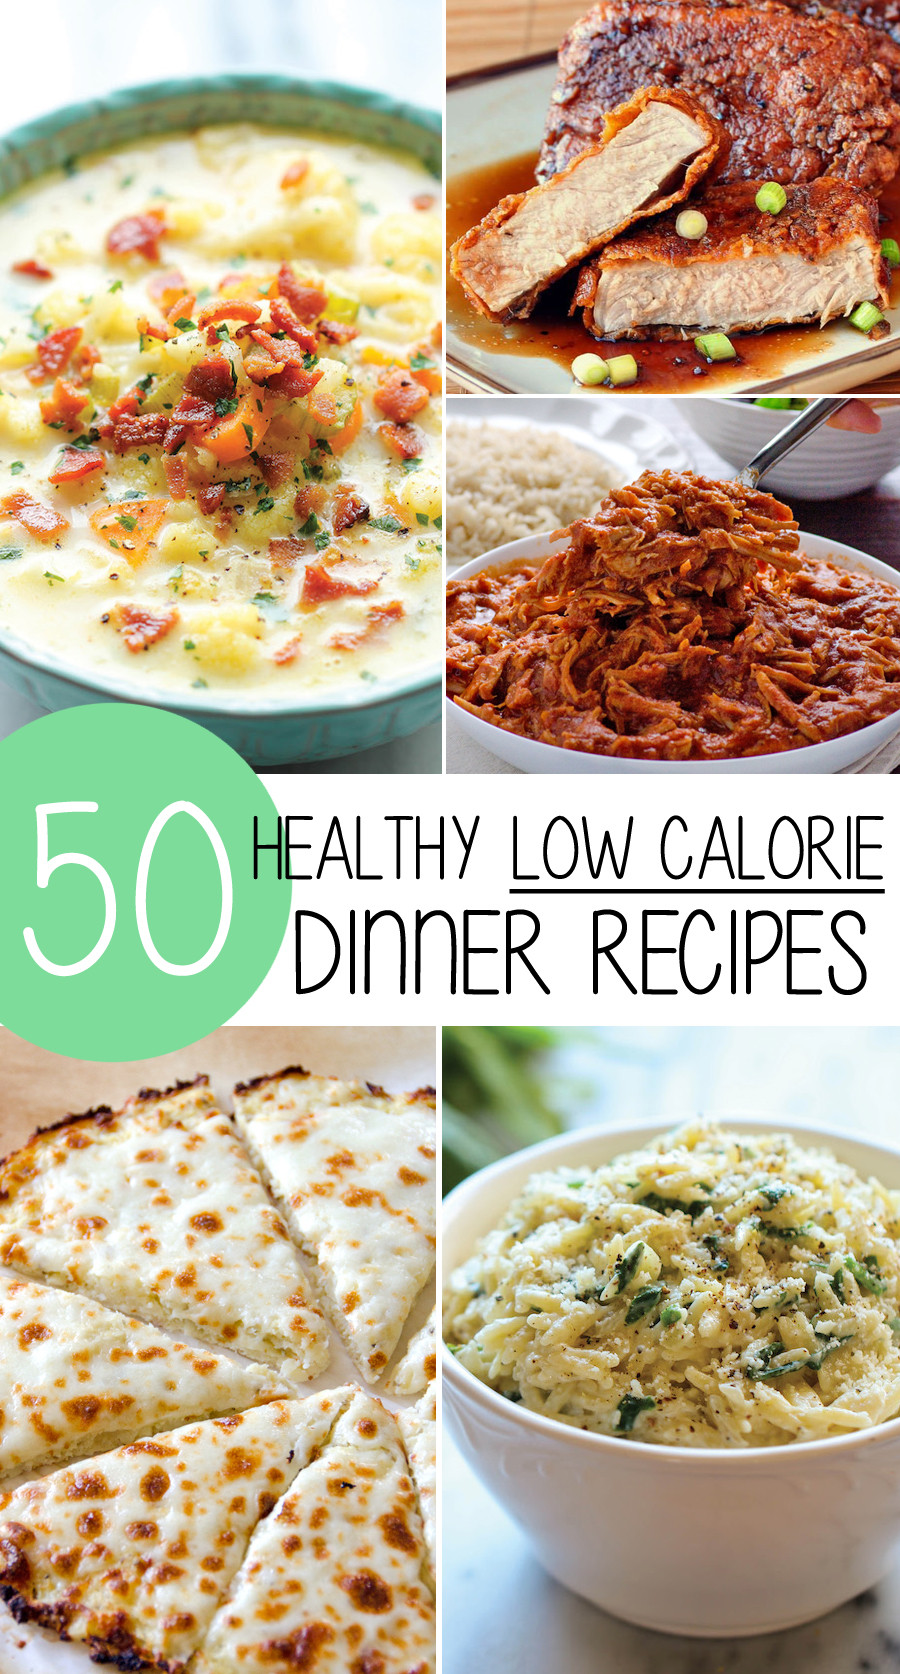 Healthy Weight Loss Dinners  50 Healthy Low Calorie Weight Loss Dinner Recipes